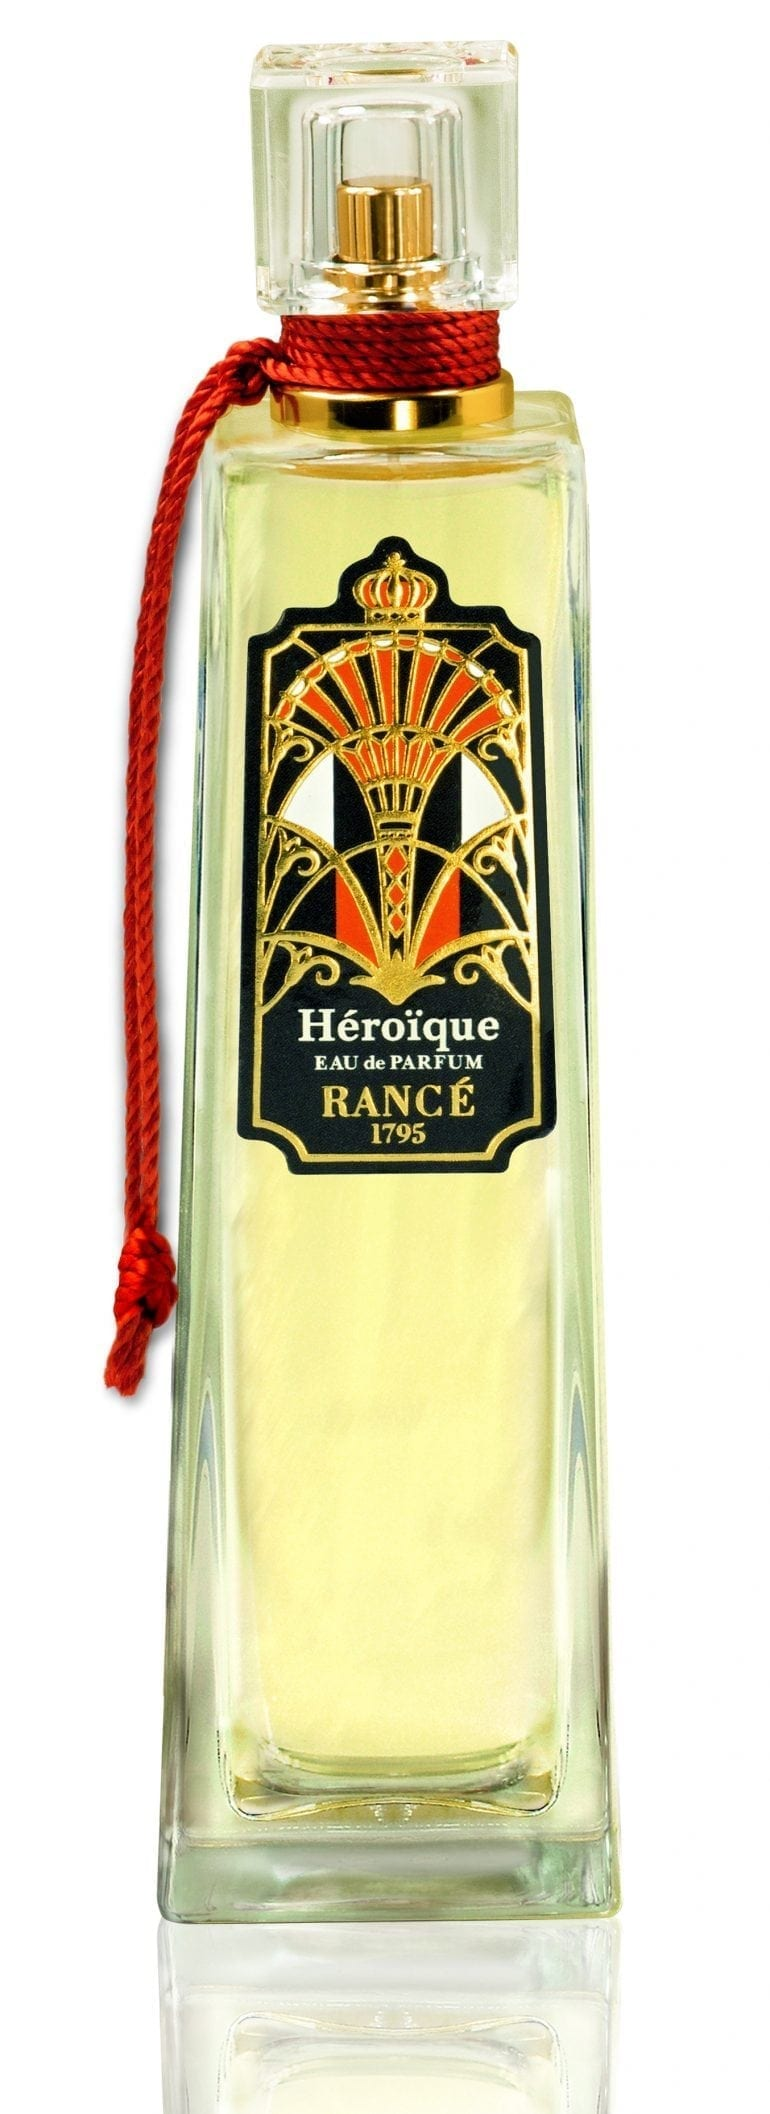 HEROIQUE bottle e1479286369311 770x2114 - Rancé 1795, Collection Impériale